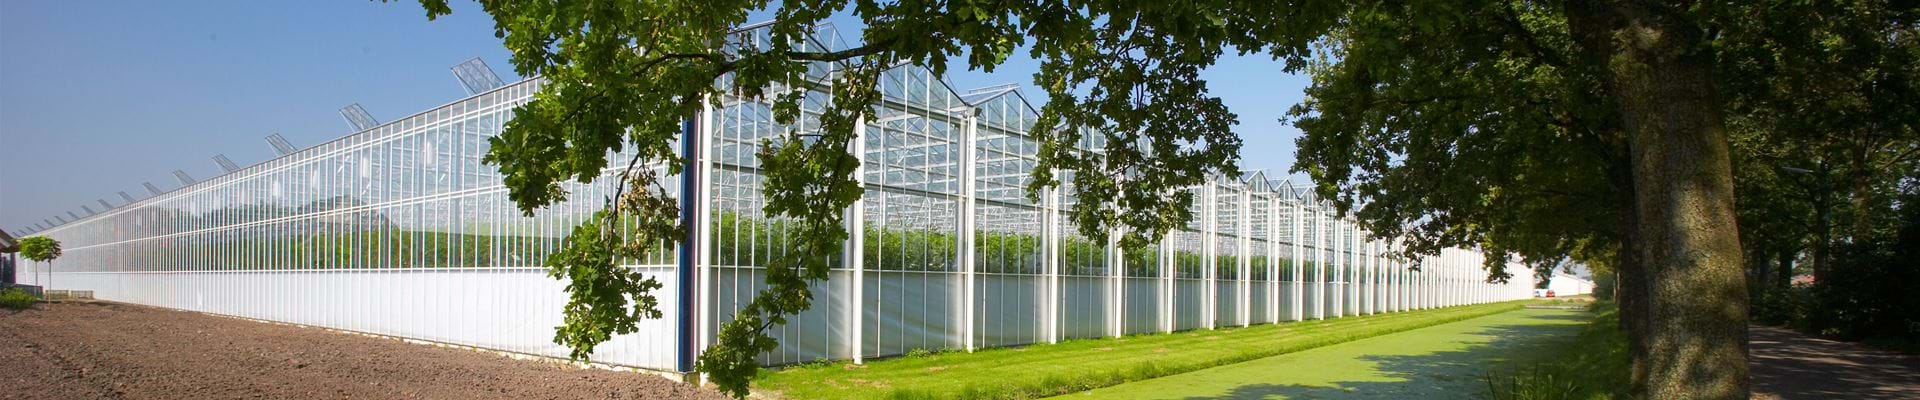 Glastuinbouw - Gakon Horticultural Projects - Turnkey kassenbouwprojecten